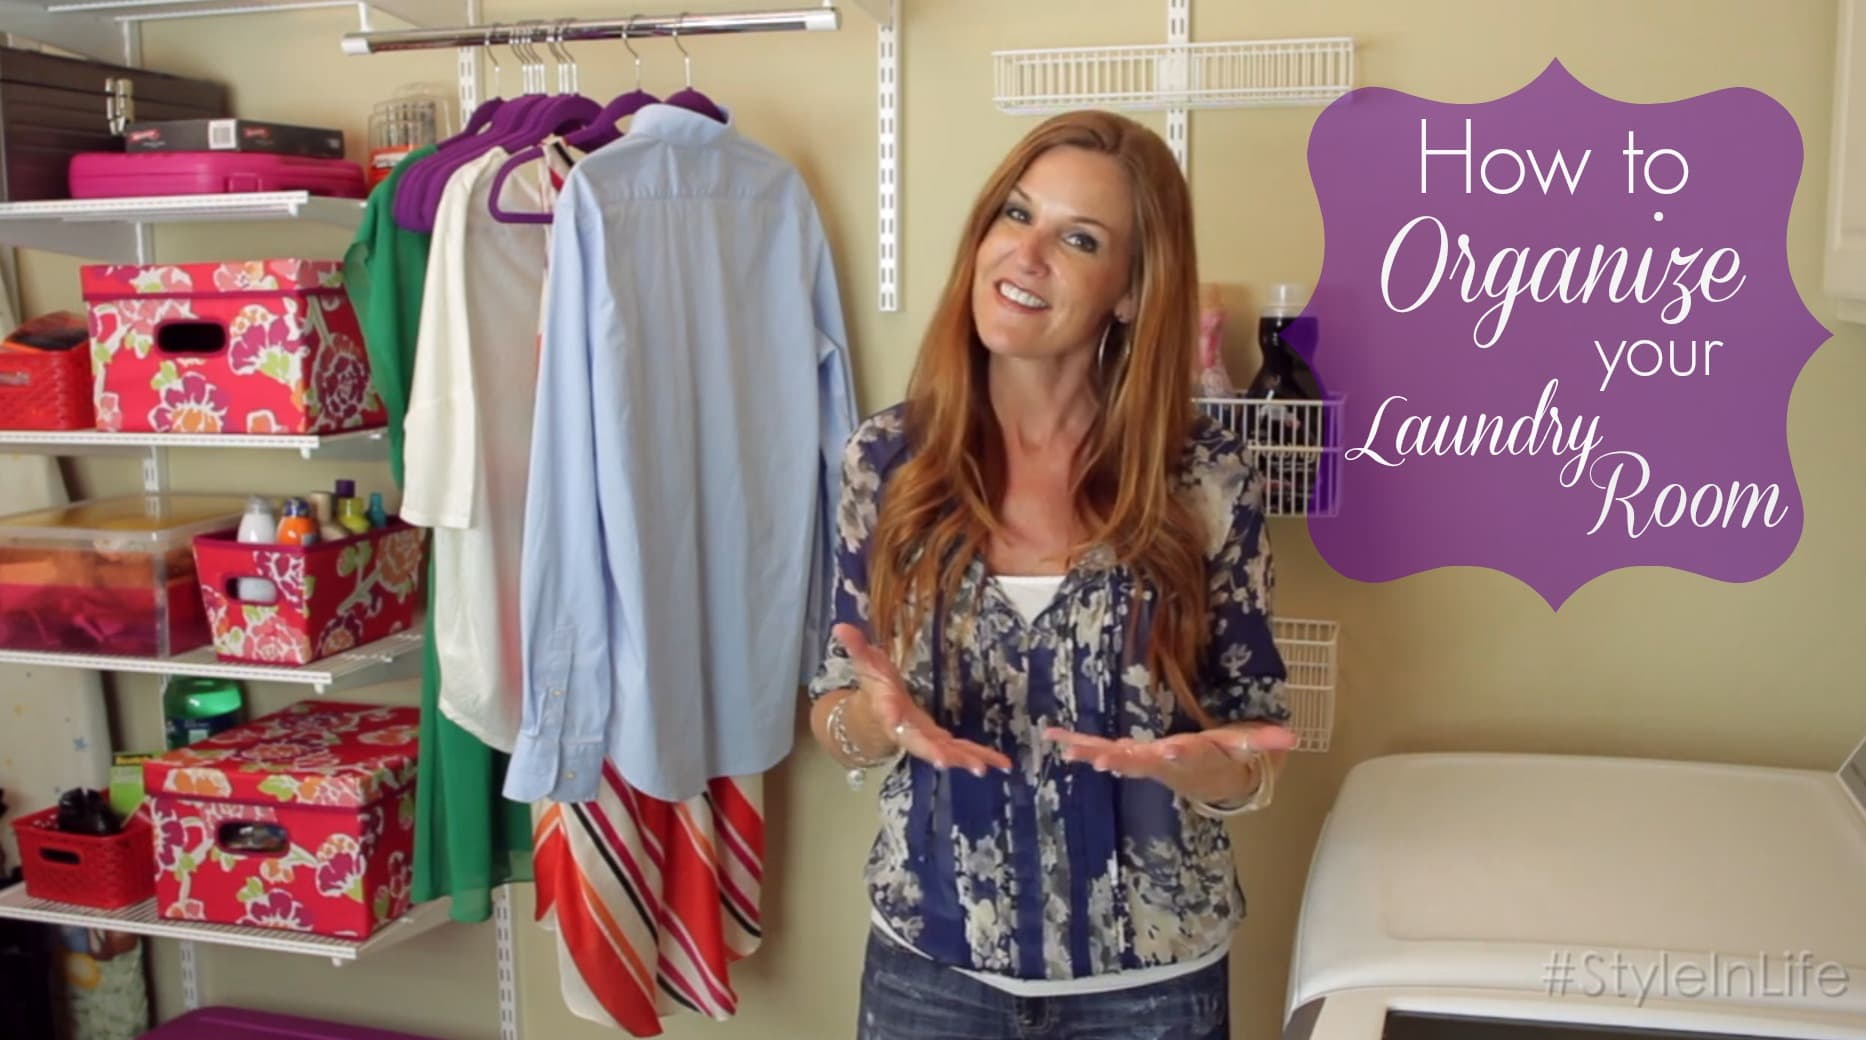 How to Organize Your Laundry Room - ExtraordinaryMommy.com